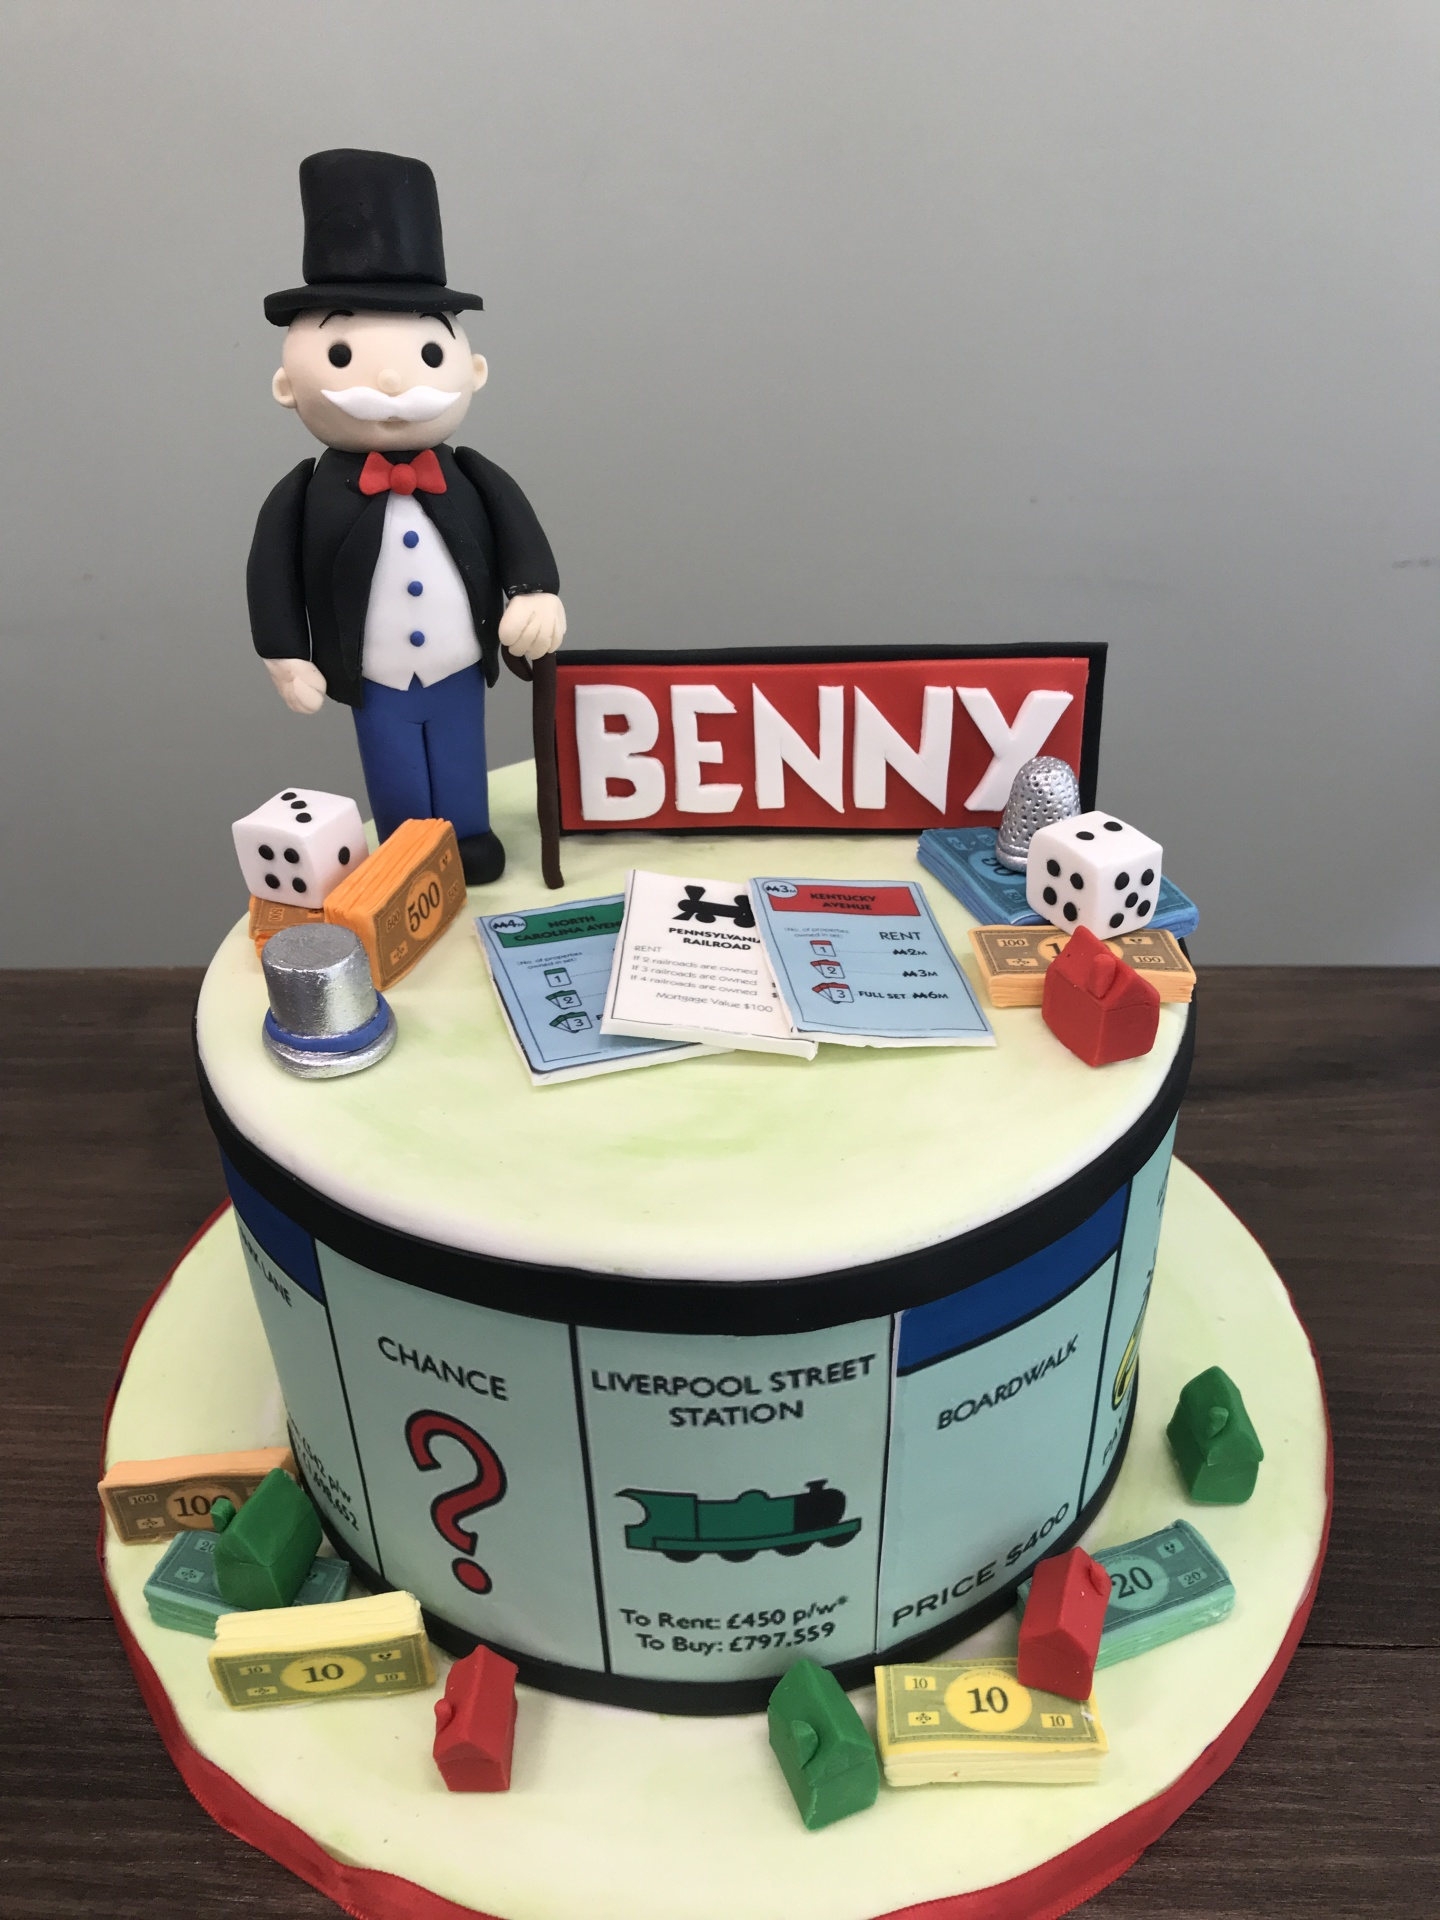 Monopoly themed cake with Fondant Monopoly Man! Custom Cakes NJ